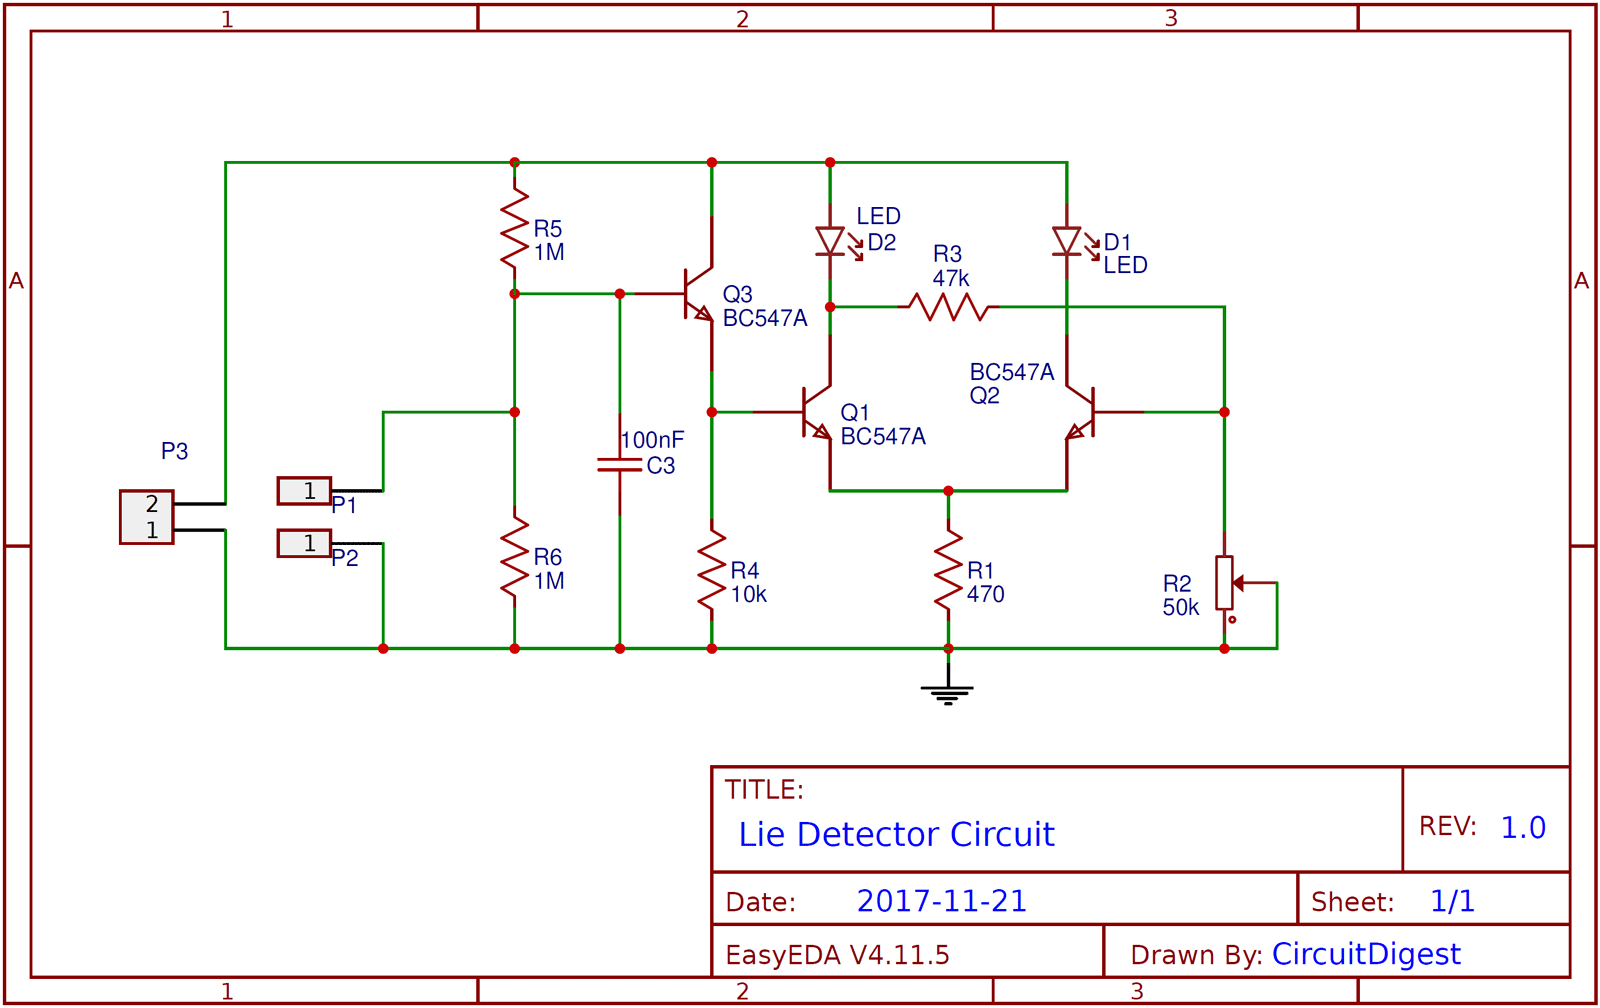 Simple Lie Detector Circuit diagram